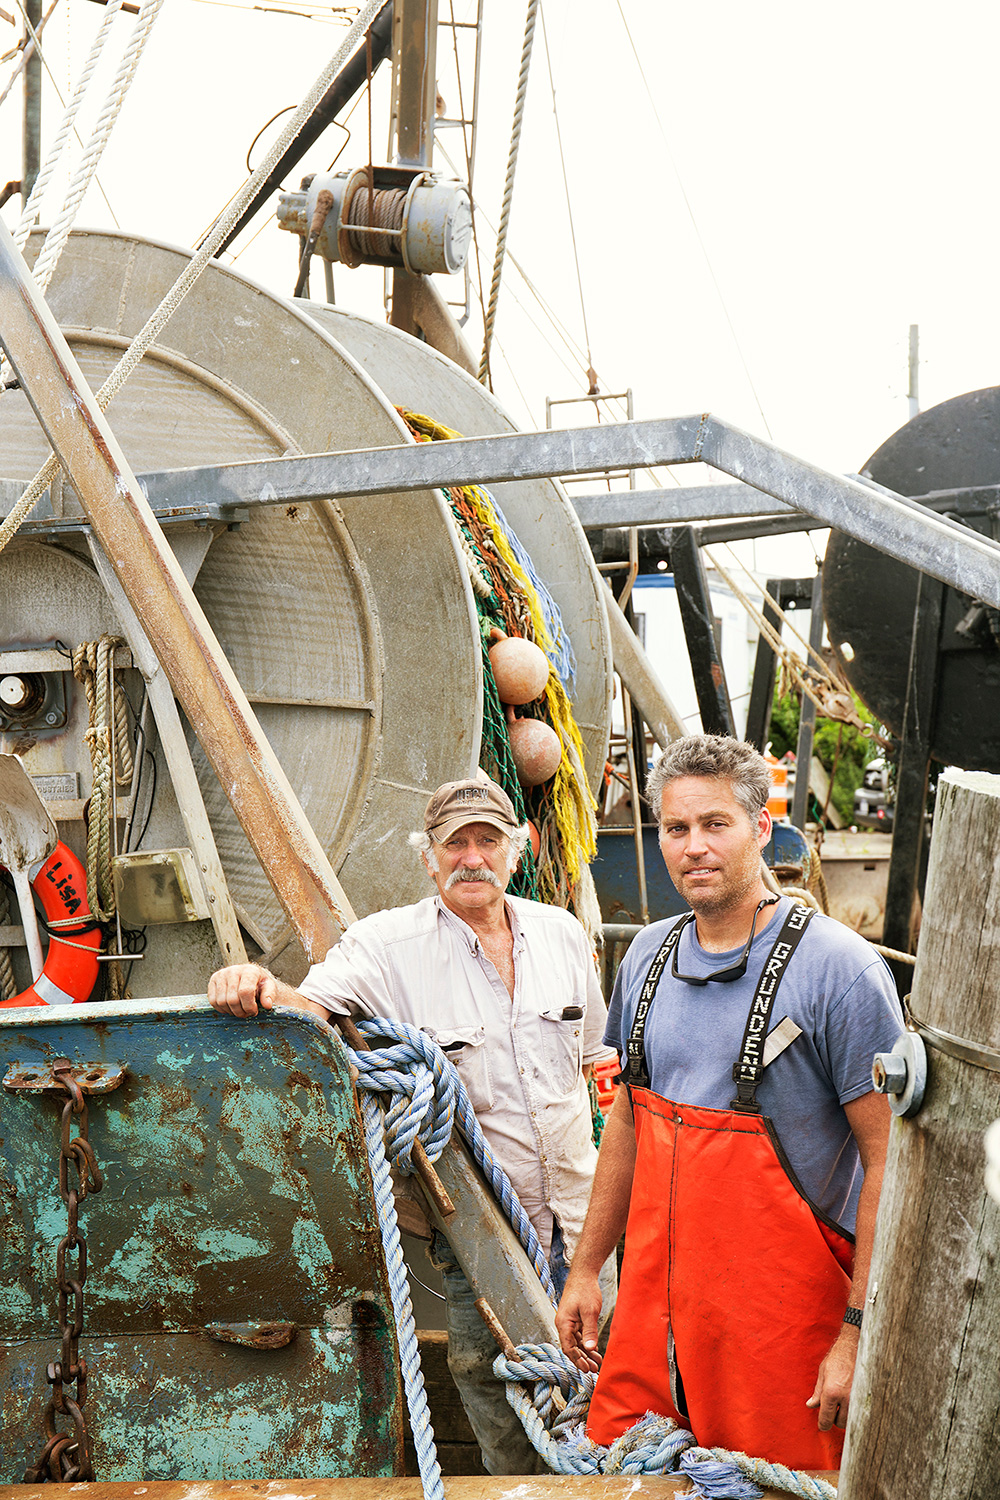 Bruce Beckwith and his son PJ Beckwith, Commercial Fishermen, Allison Lisa Boat, Town Dock